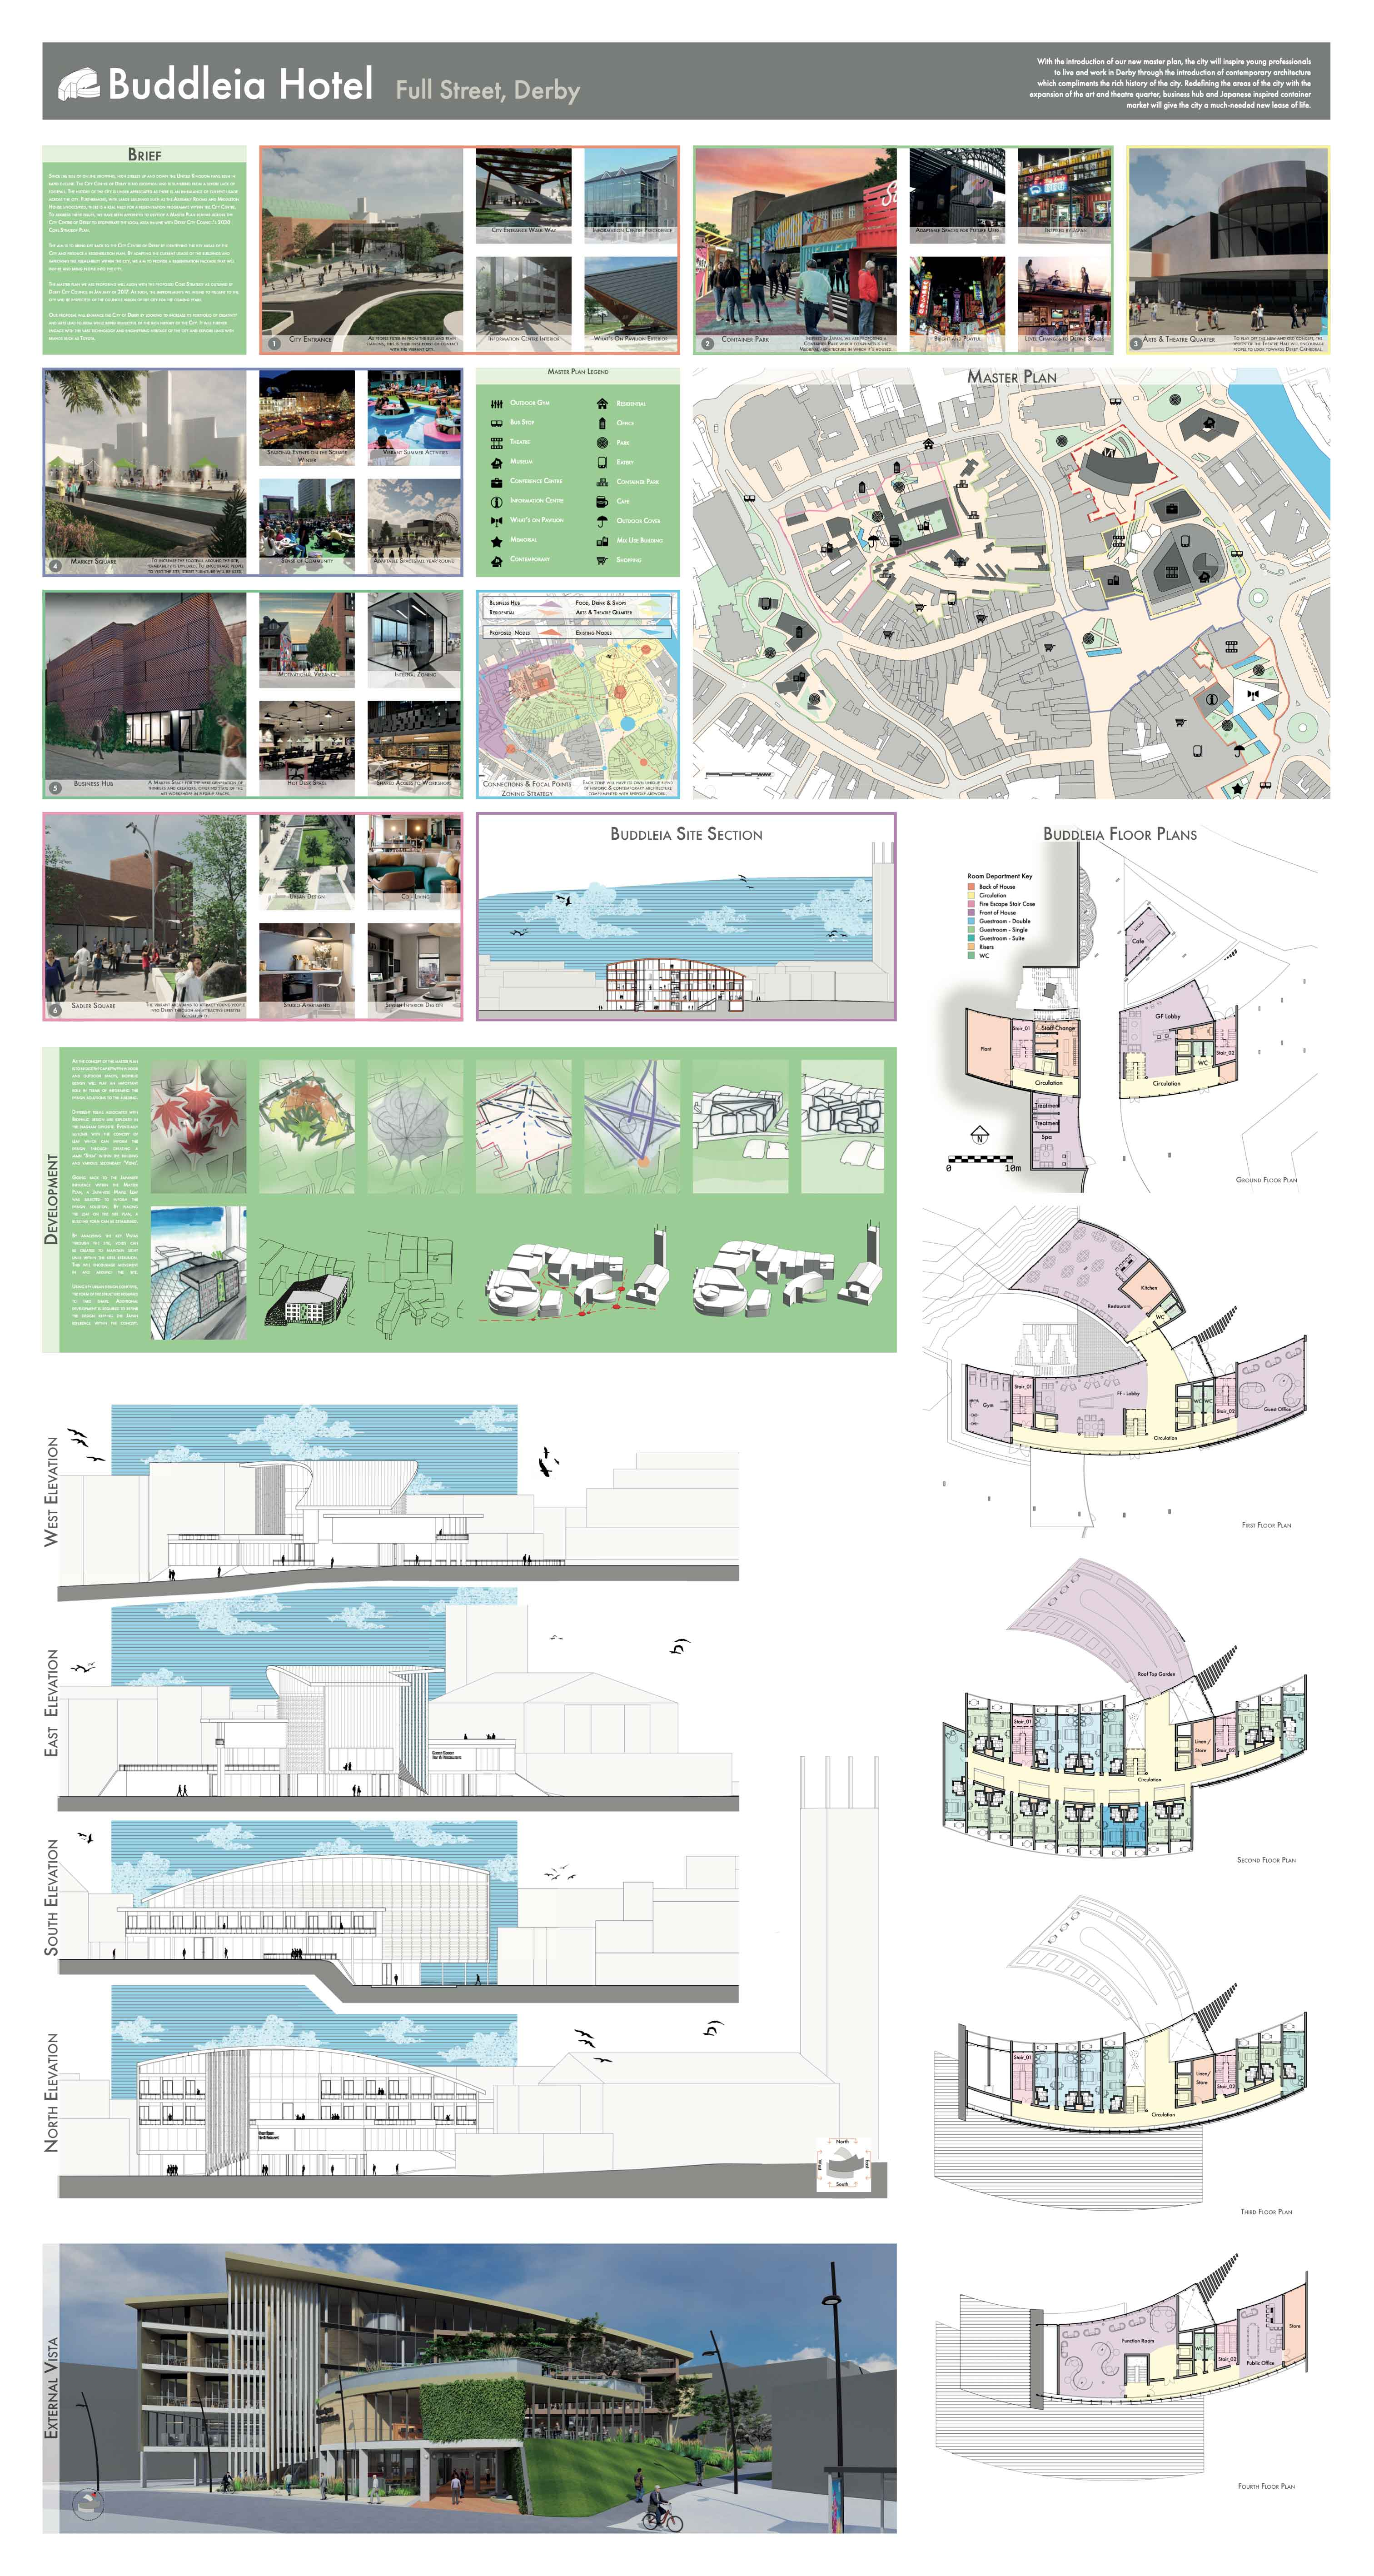 Page one of the Buddleia Hotel Project Overview showing elevations and floor plans